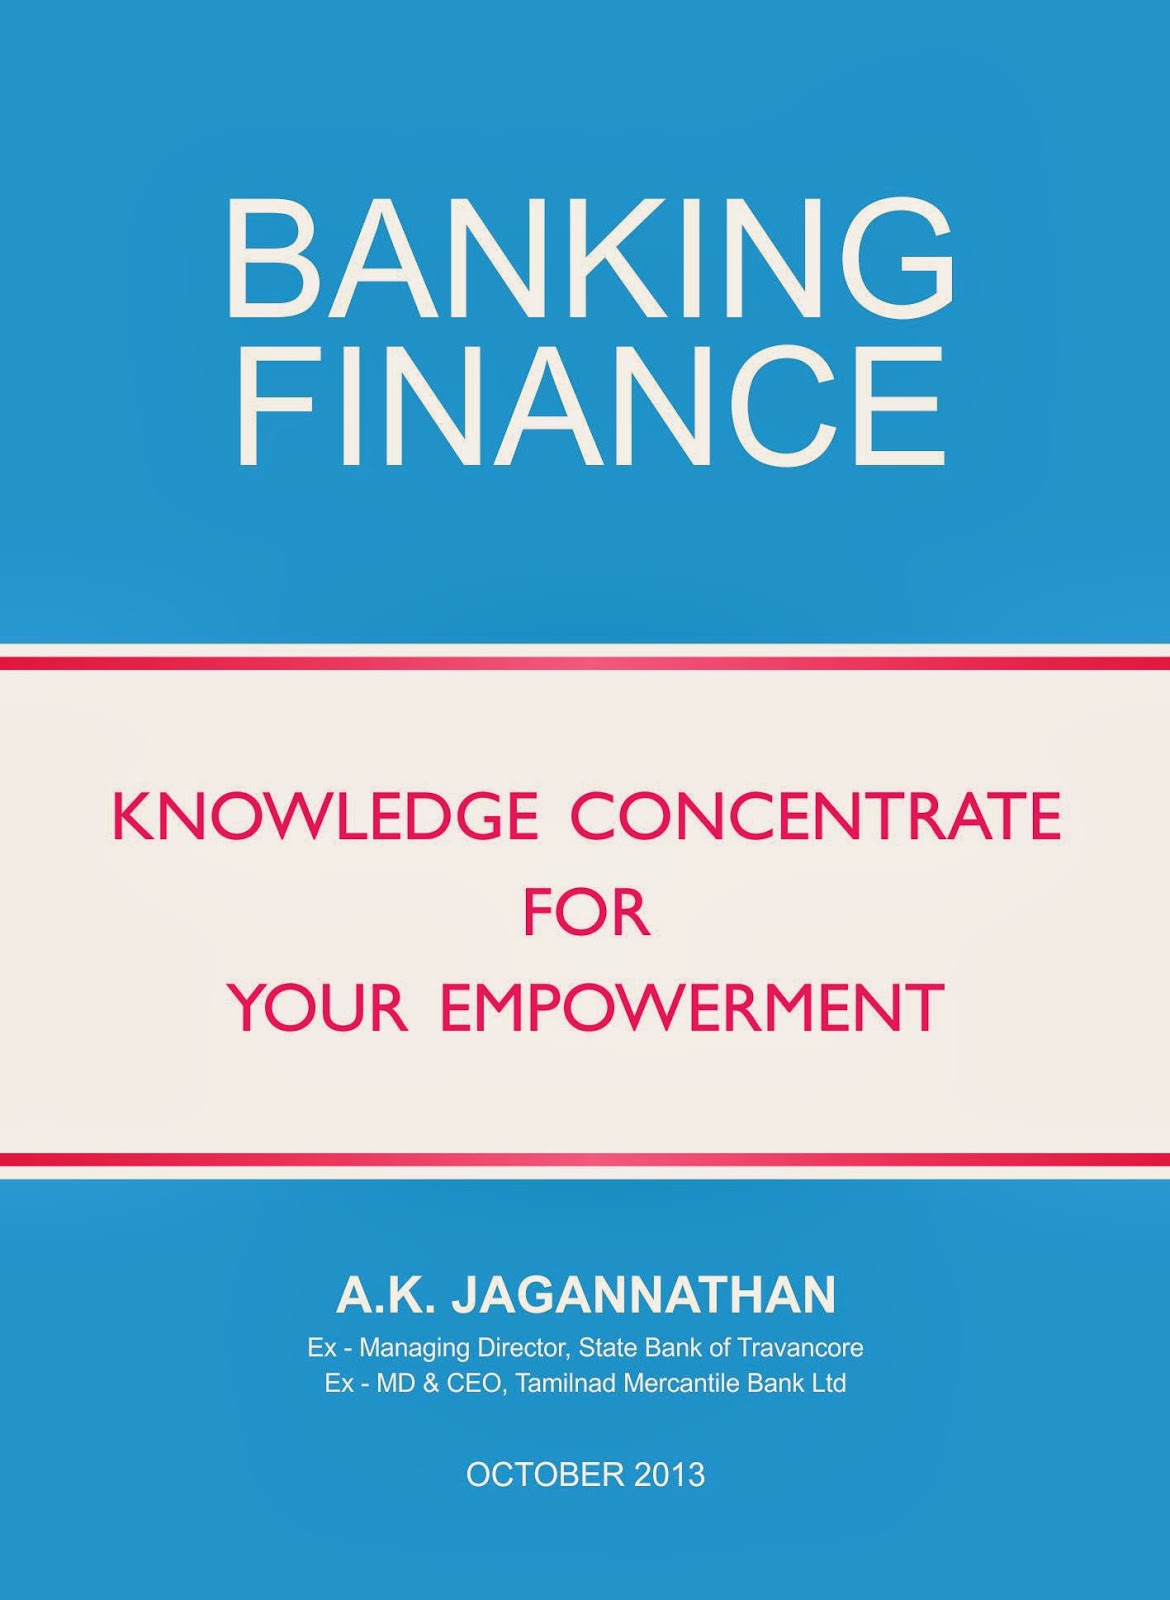 banking finance - Finance Cover